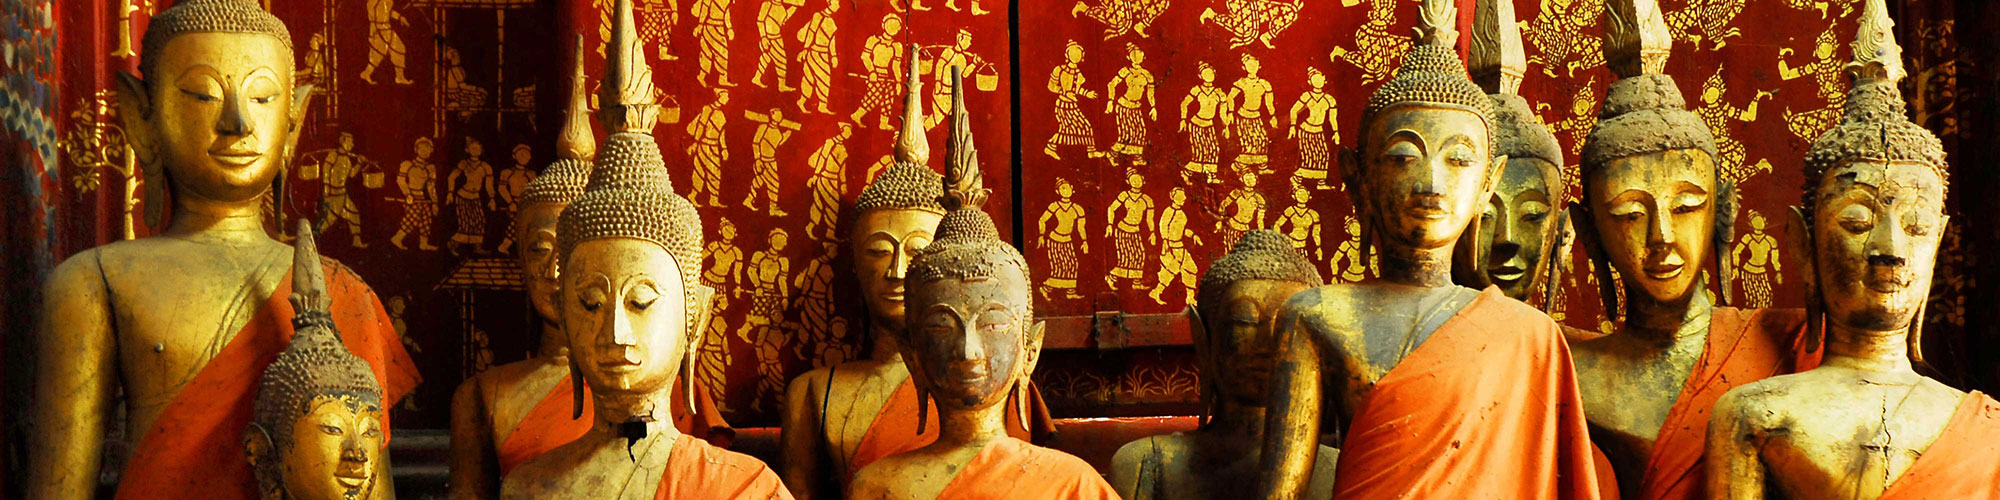 Lao Traditional Statues